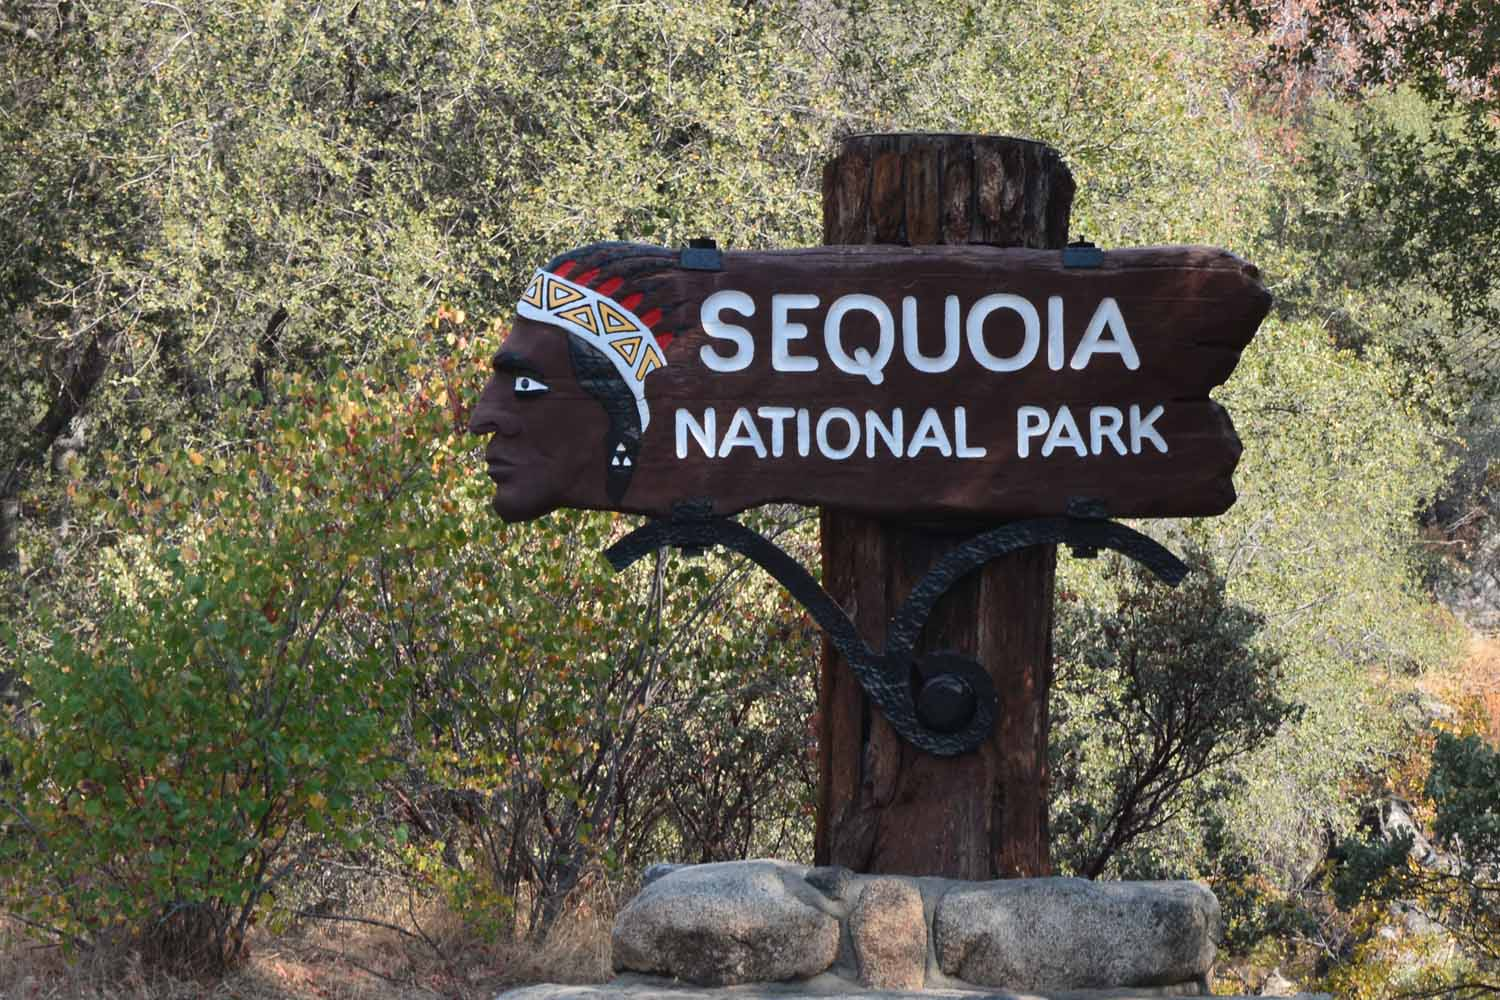 Sequoia was a day drive from Yosemite.  Another awesome national park in the Sierra Nevada Mountains.